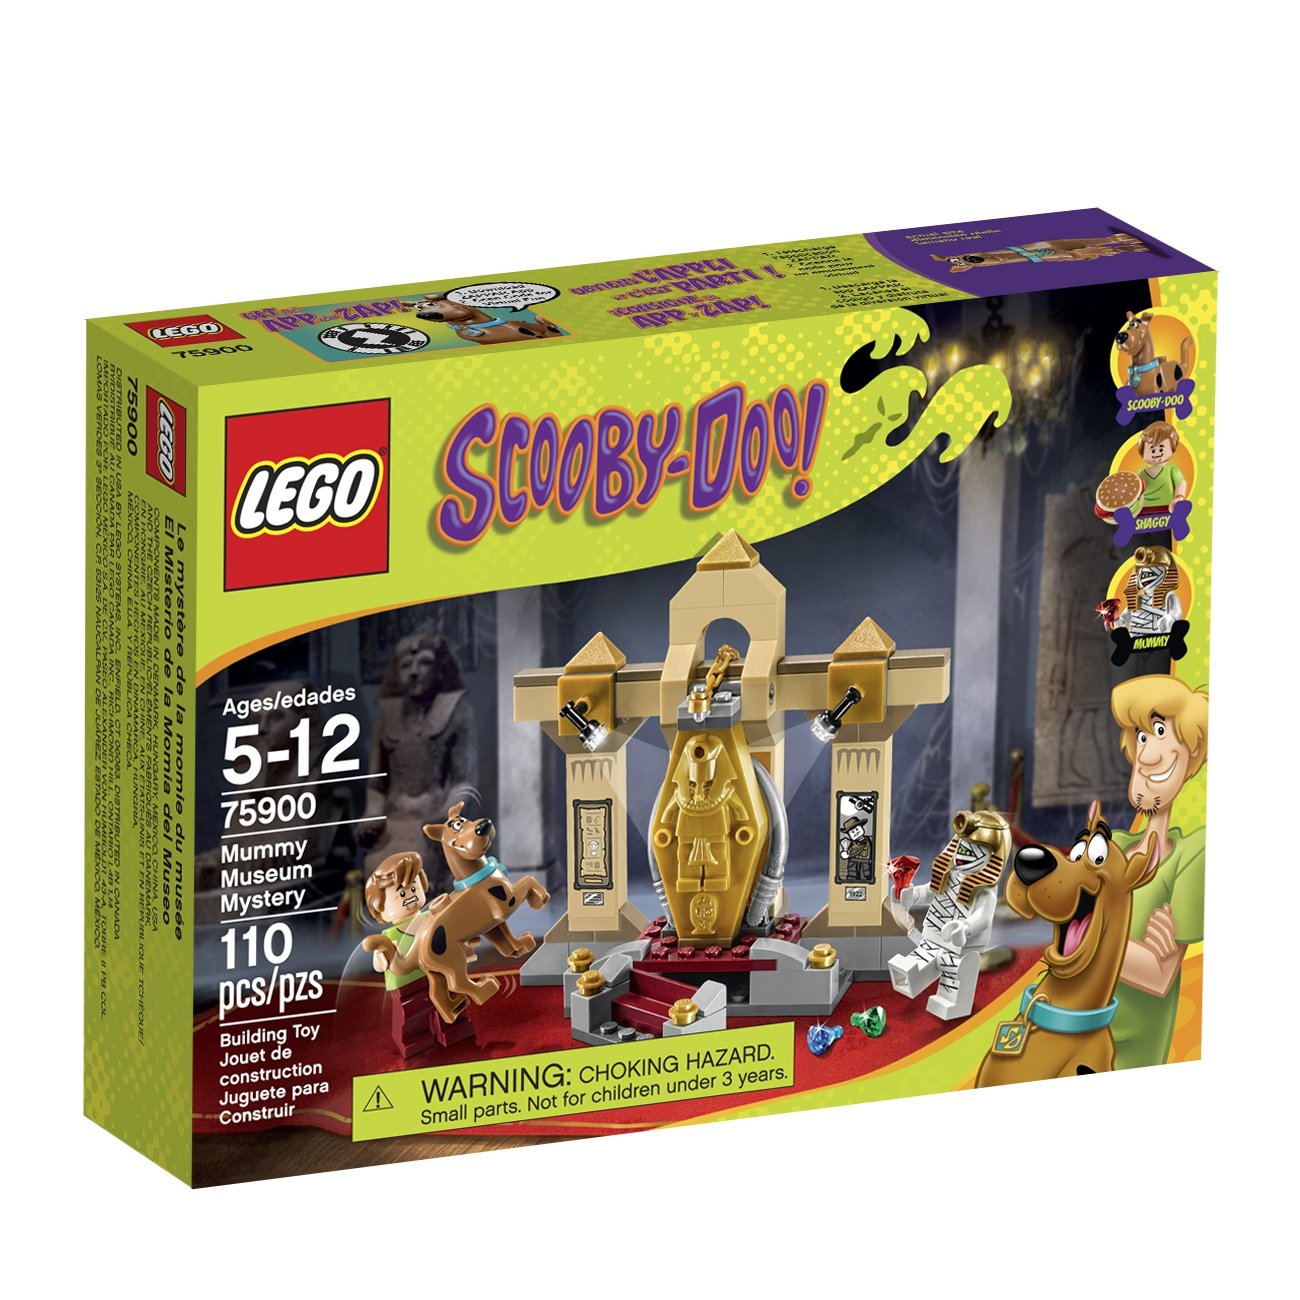 Top 5 Best LEGO Scooby Doo Sets Reviews in 2021 10